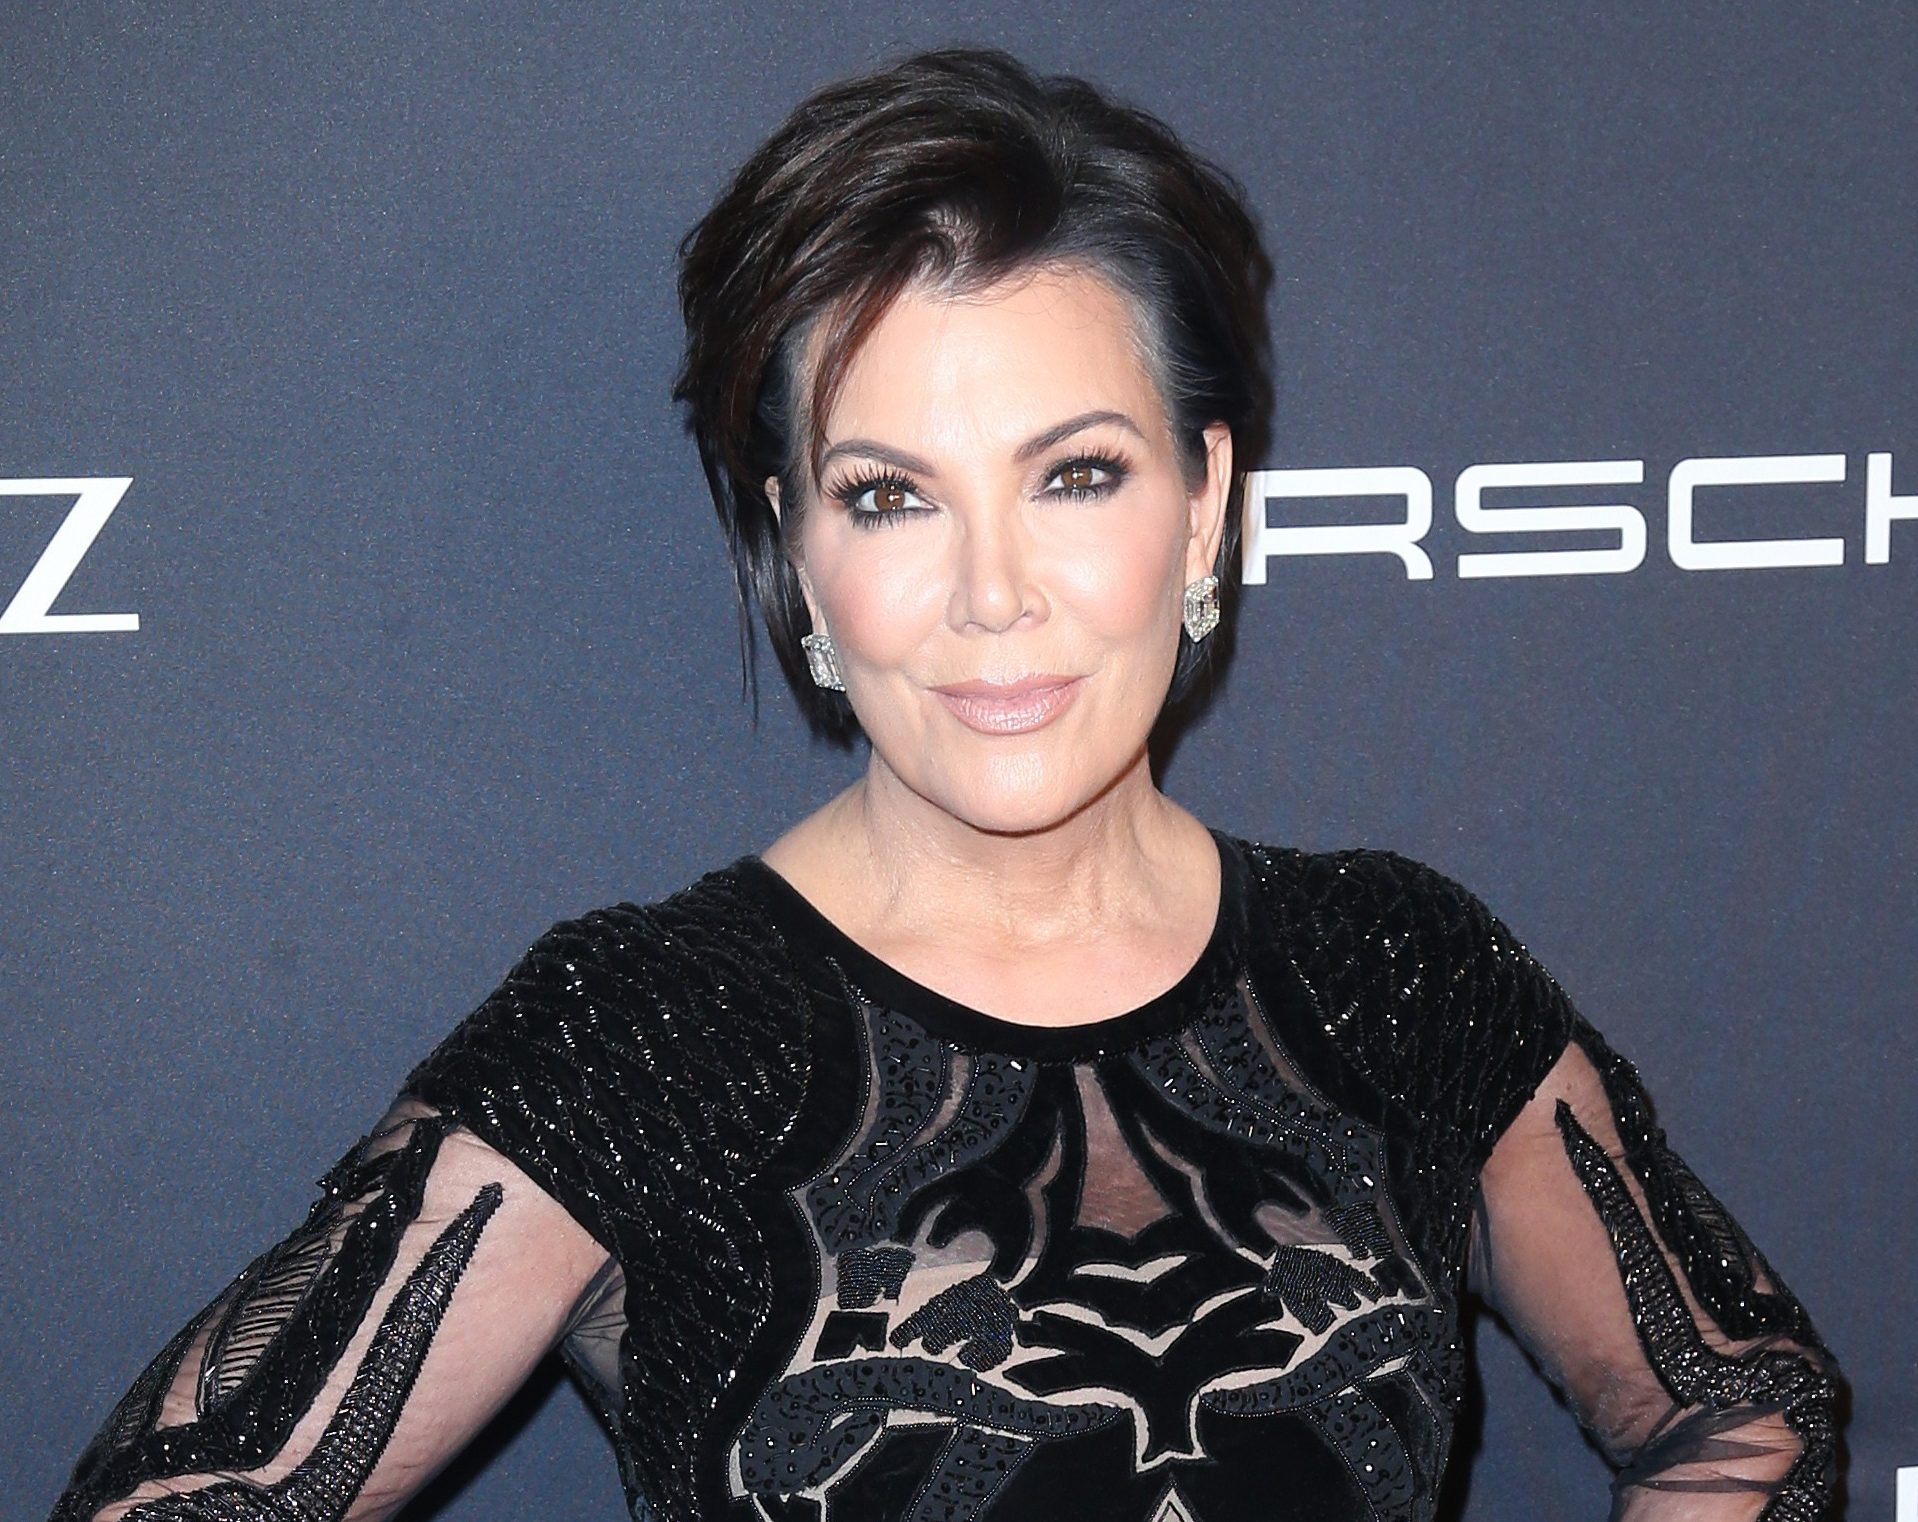 Kris Jenner begs daughter Kim to dump Kanye West